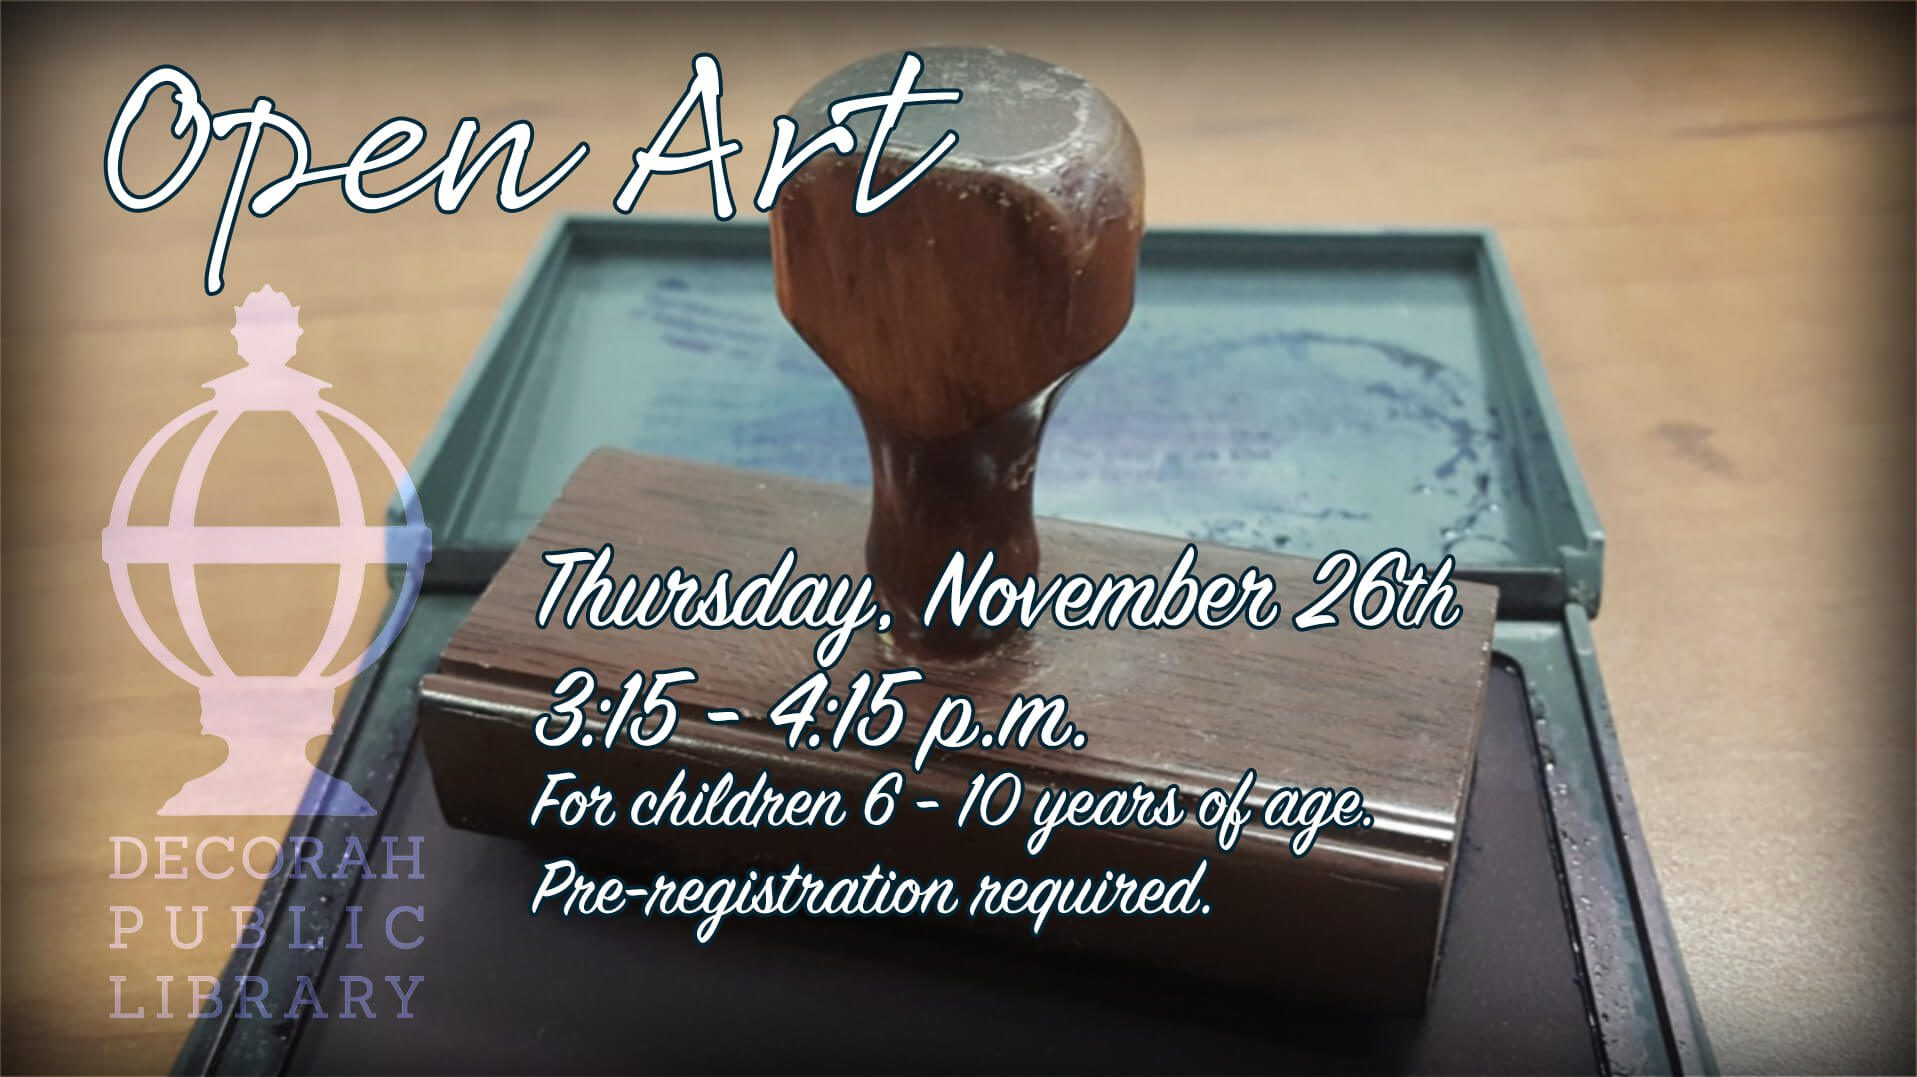 Open Art Nov 26